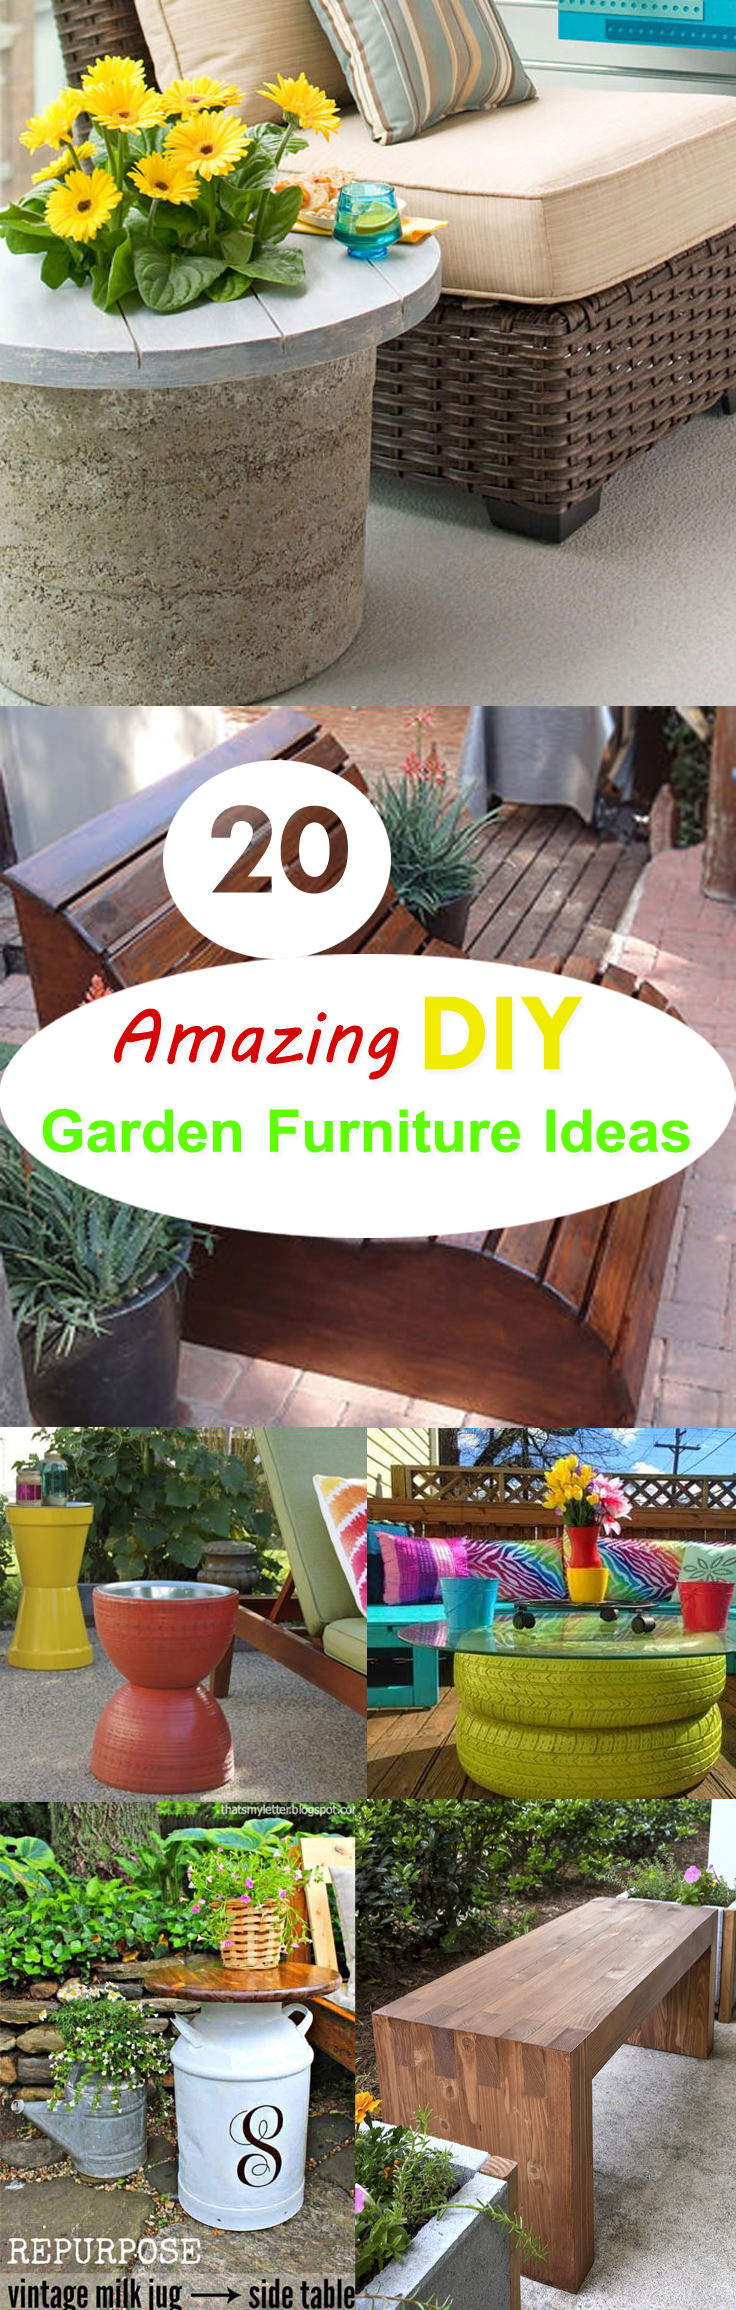 Best ideas about DIY Outdoor Furniture Ideas . Save or Pin 20 Amazing DIY Garden Furniture Ideas Now.